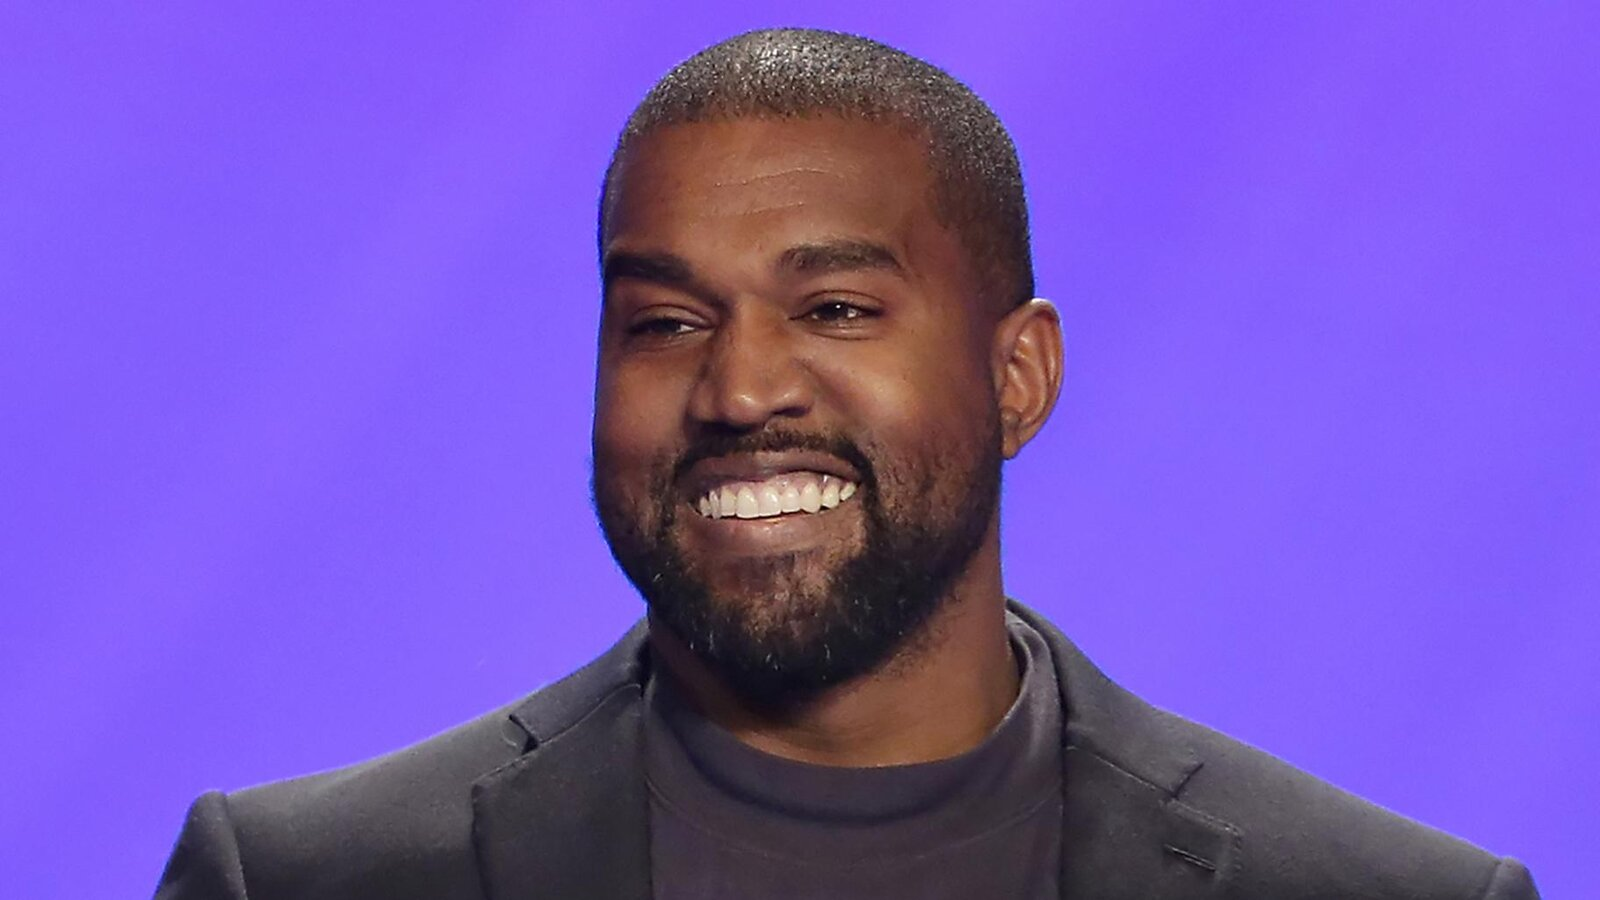 With Kanye 2020 ramping up intensely, many are wondering if the political campaign will destroy his marriage with Kim Kardashian West.